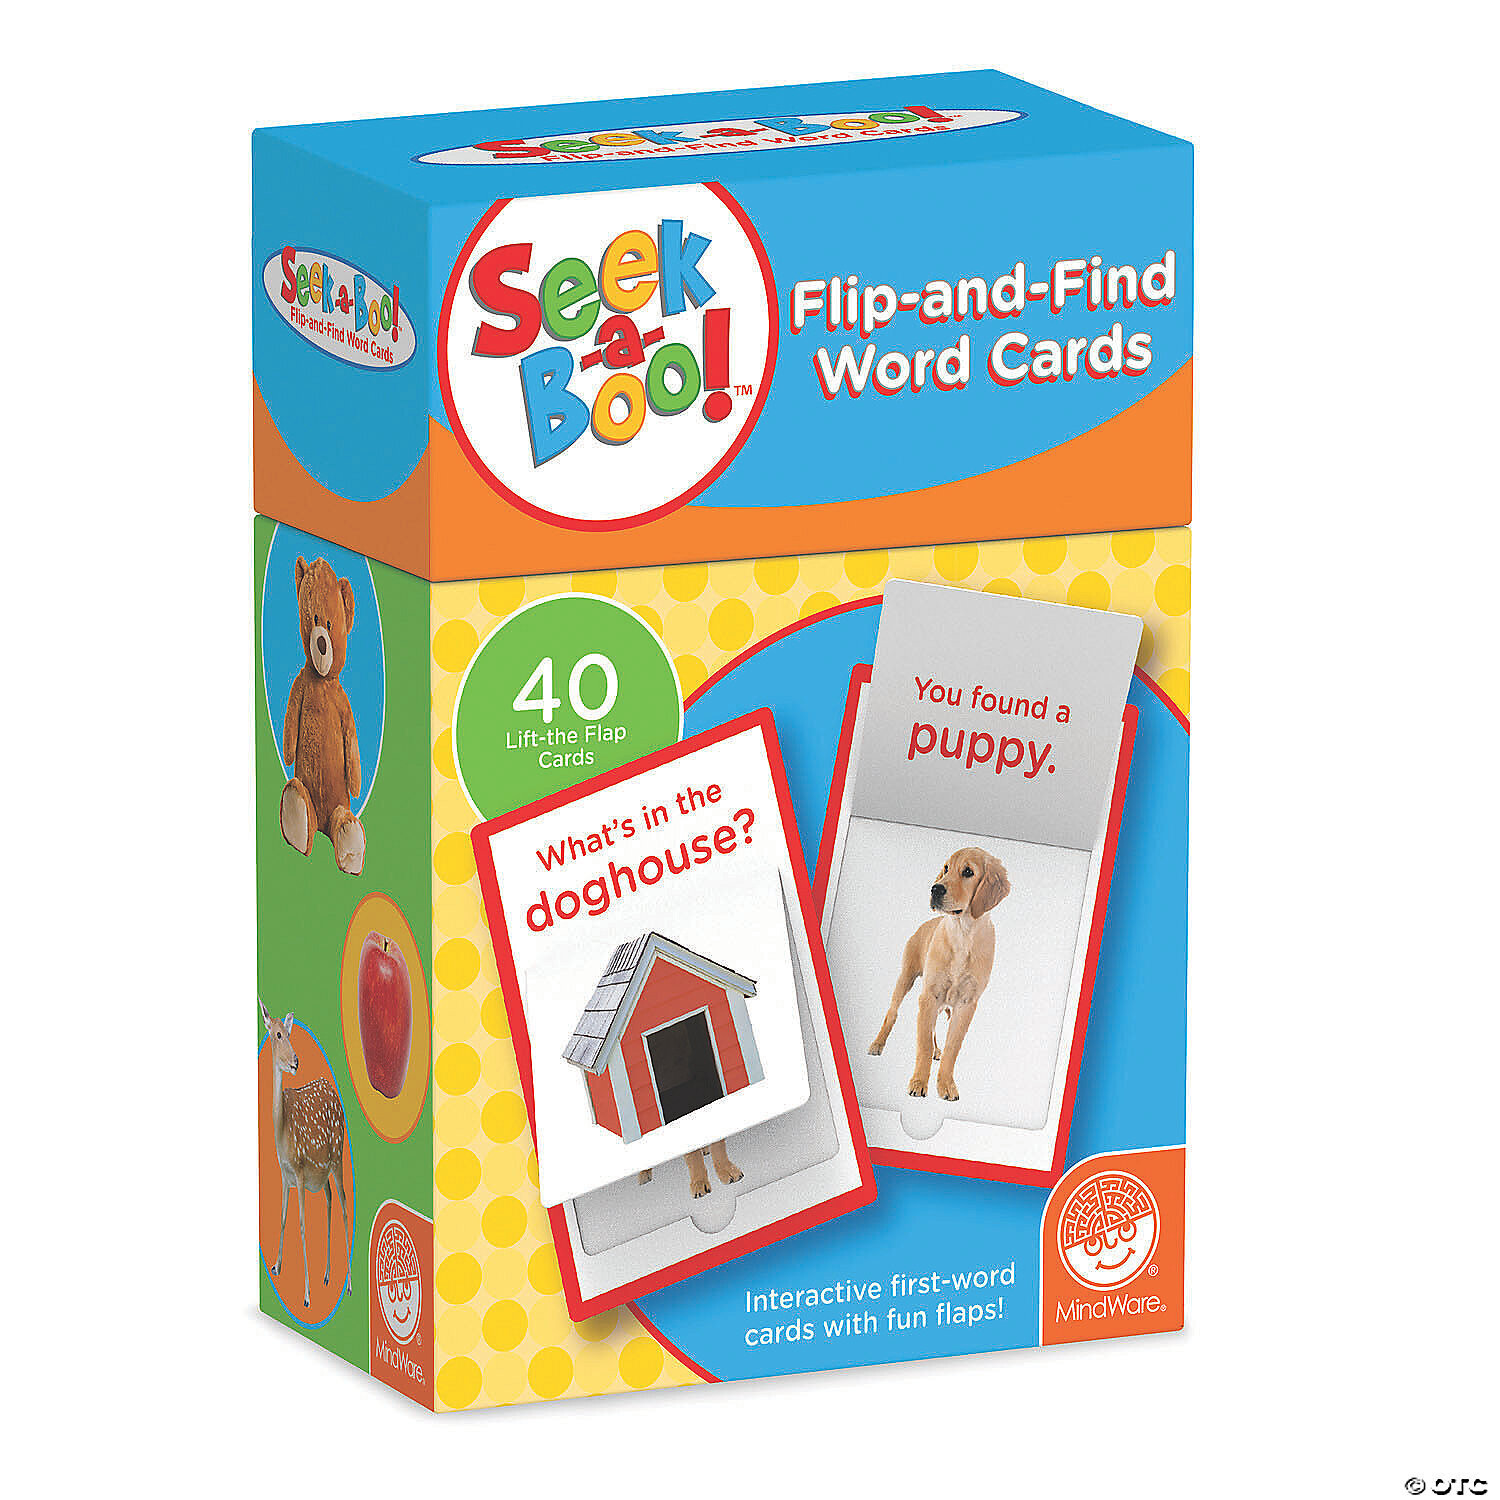 Seek A Boo!: Flip and Find Word Cards